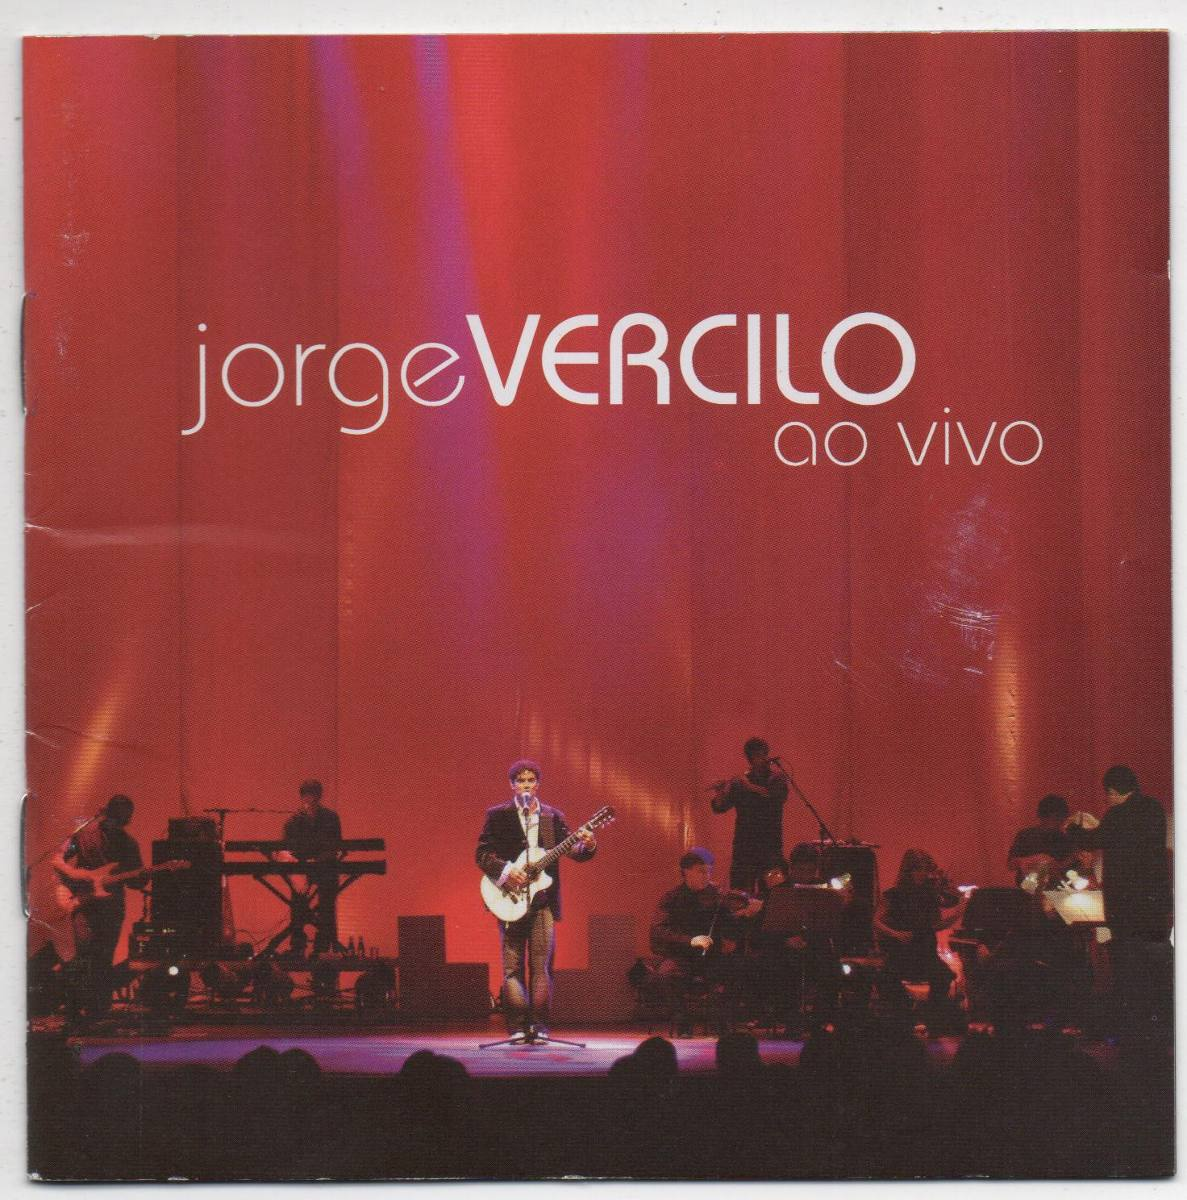 cd jorge vercilo ao vivo